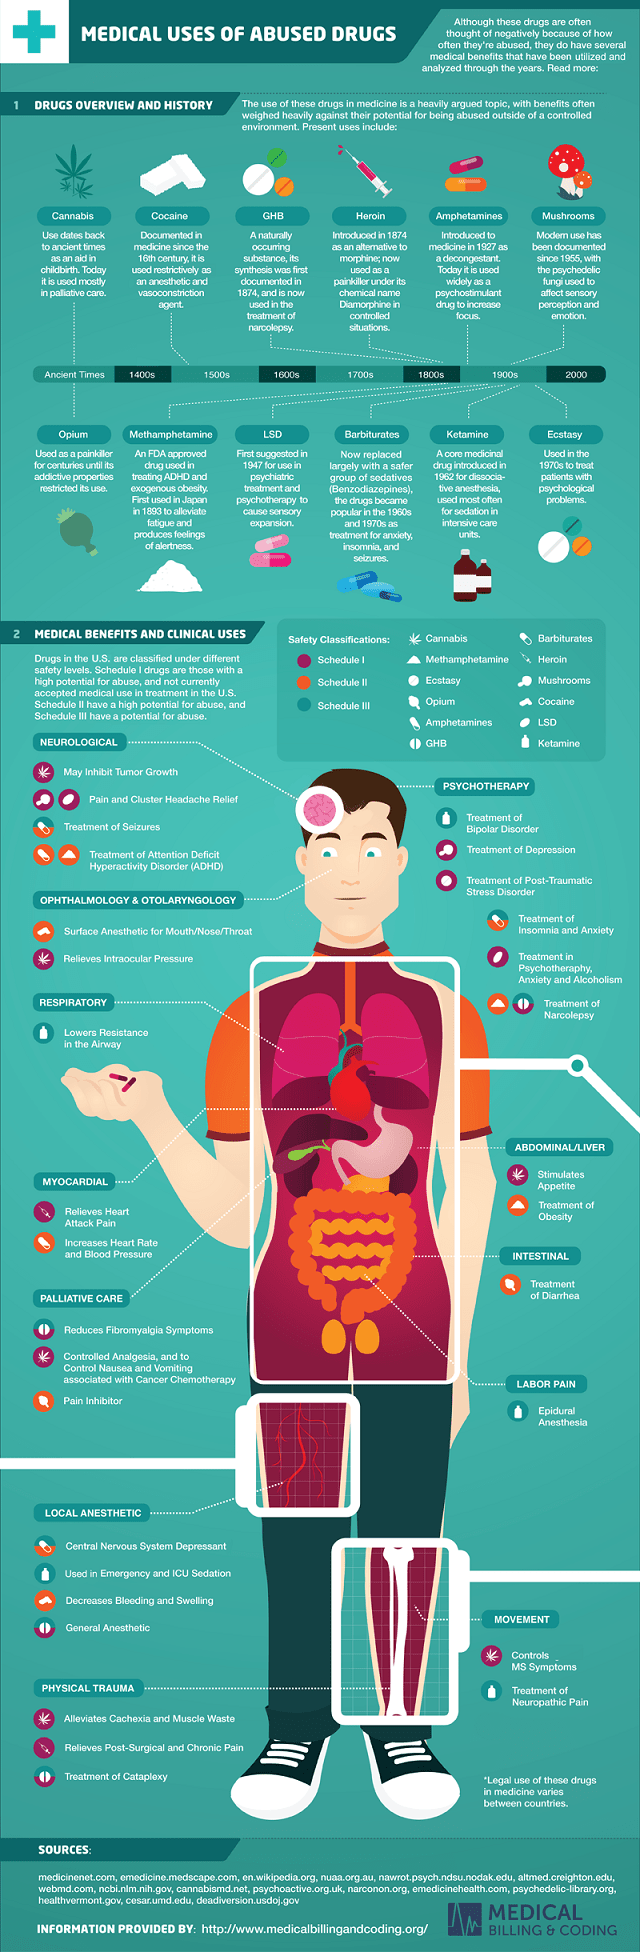 Medical Uses for Illegal Drugs